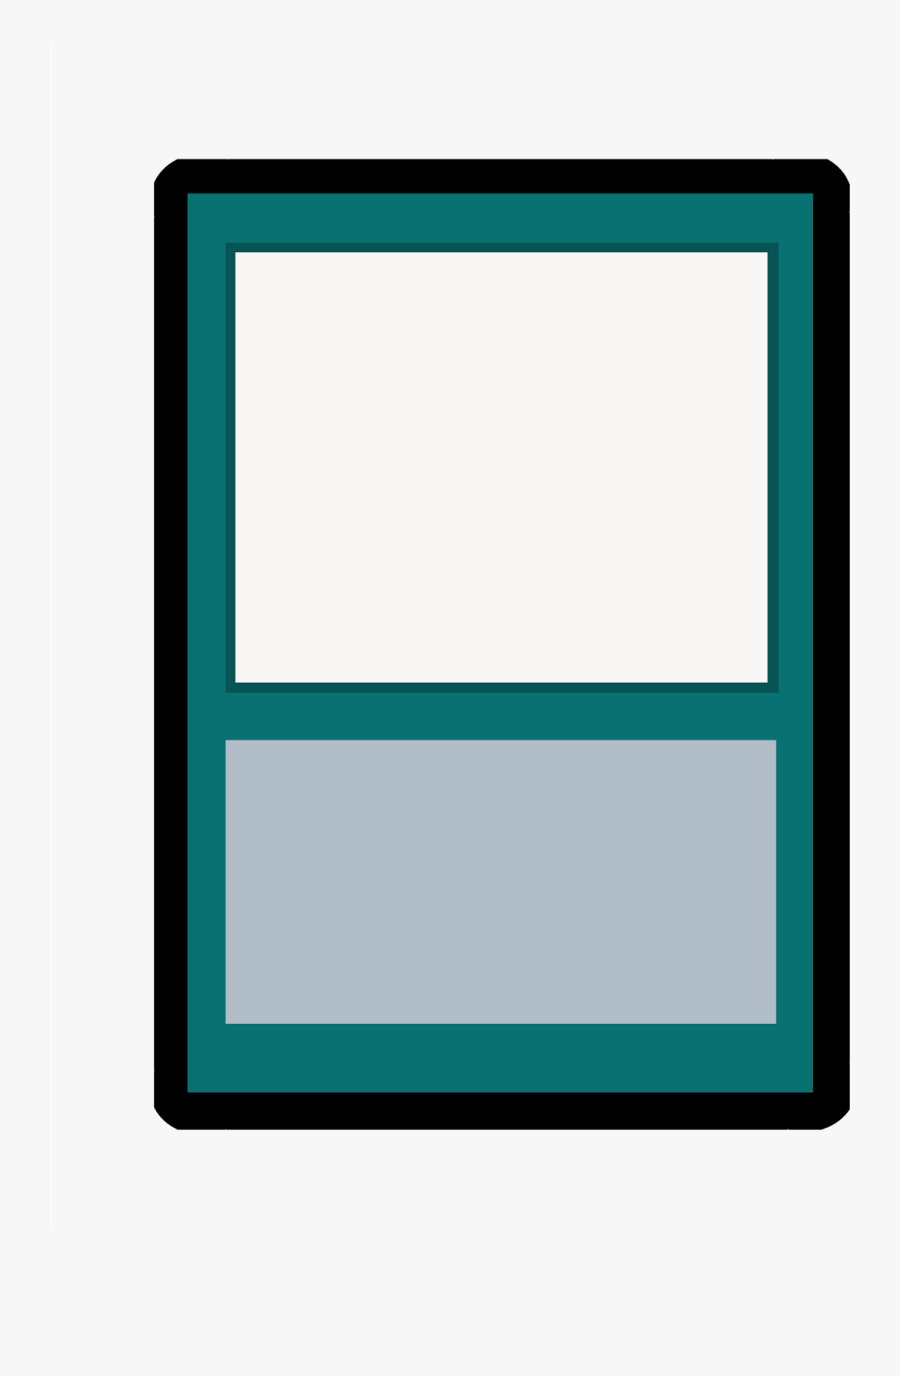 Cards Clipart Blank Card - Magic The Gathering Cards Template, Transparent Clipart